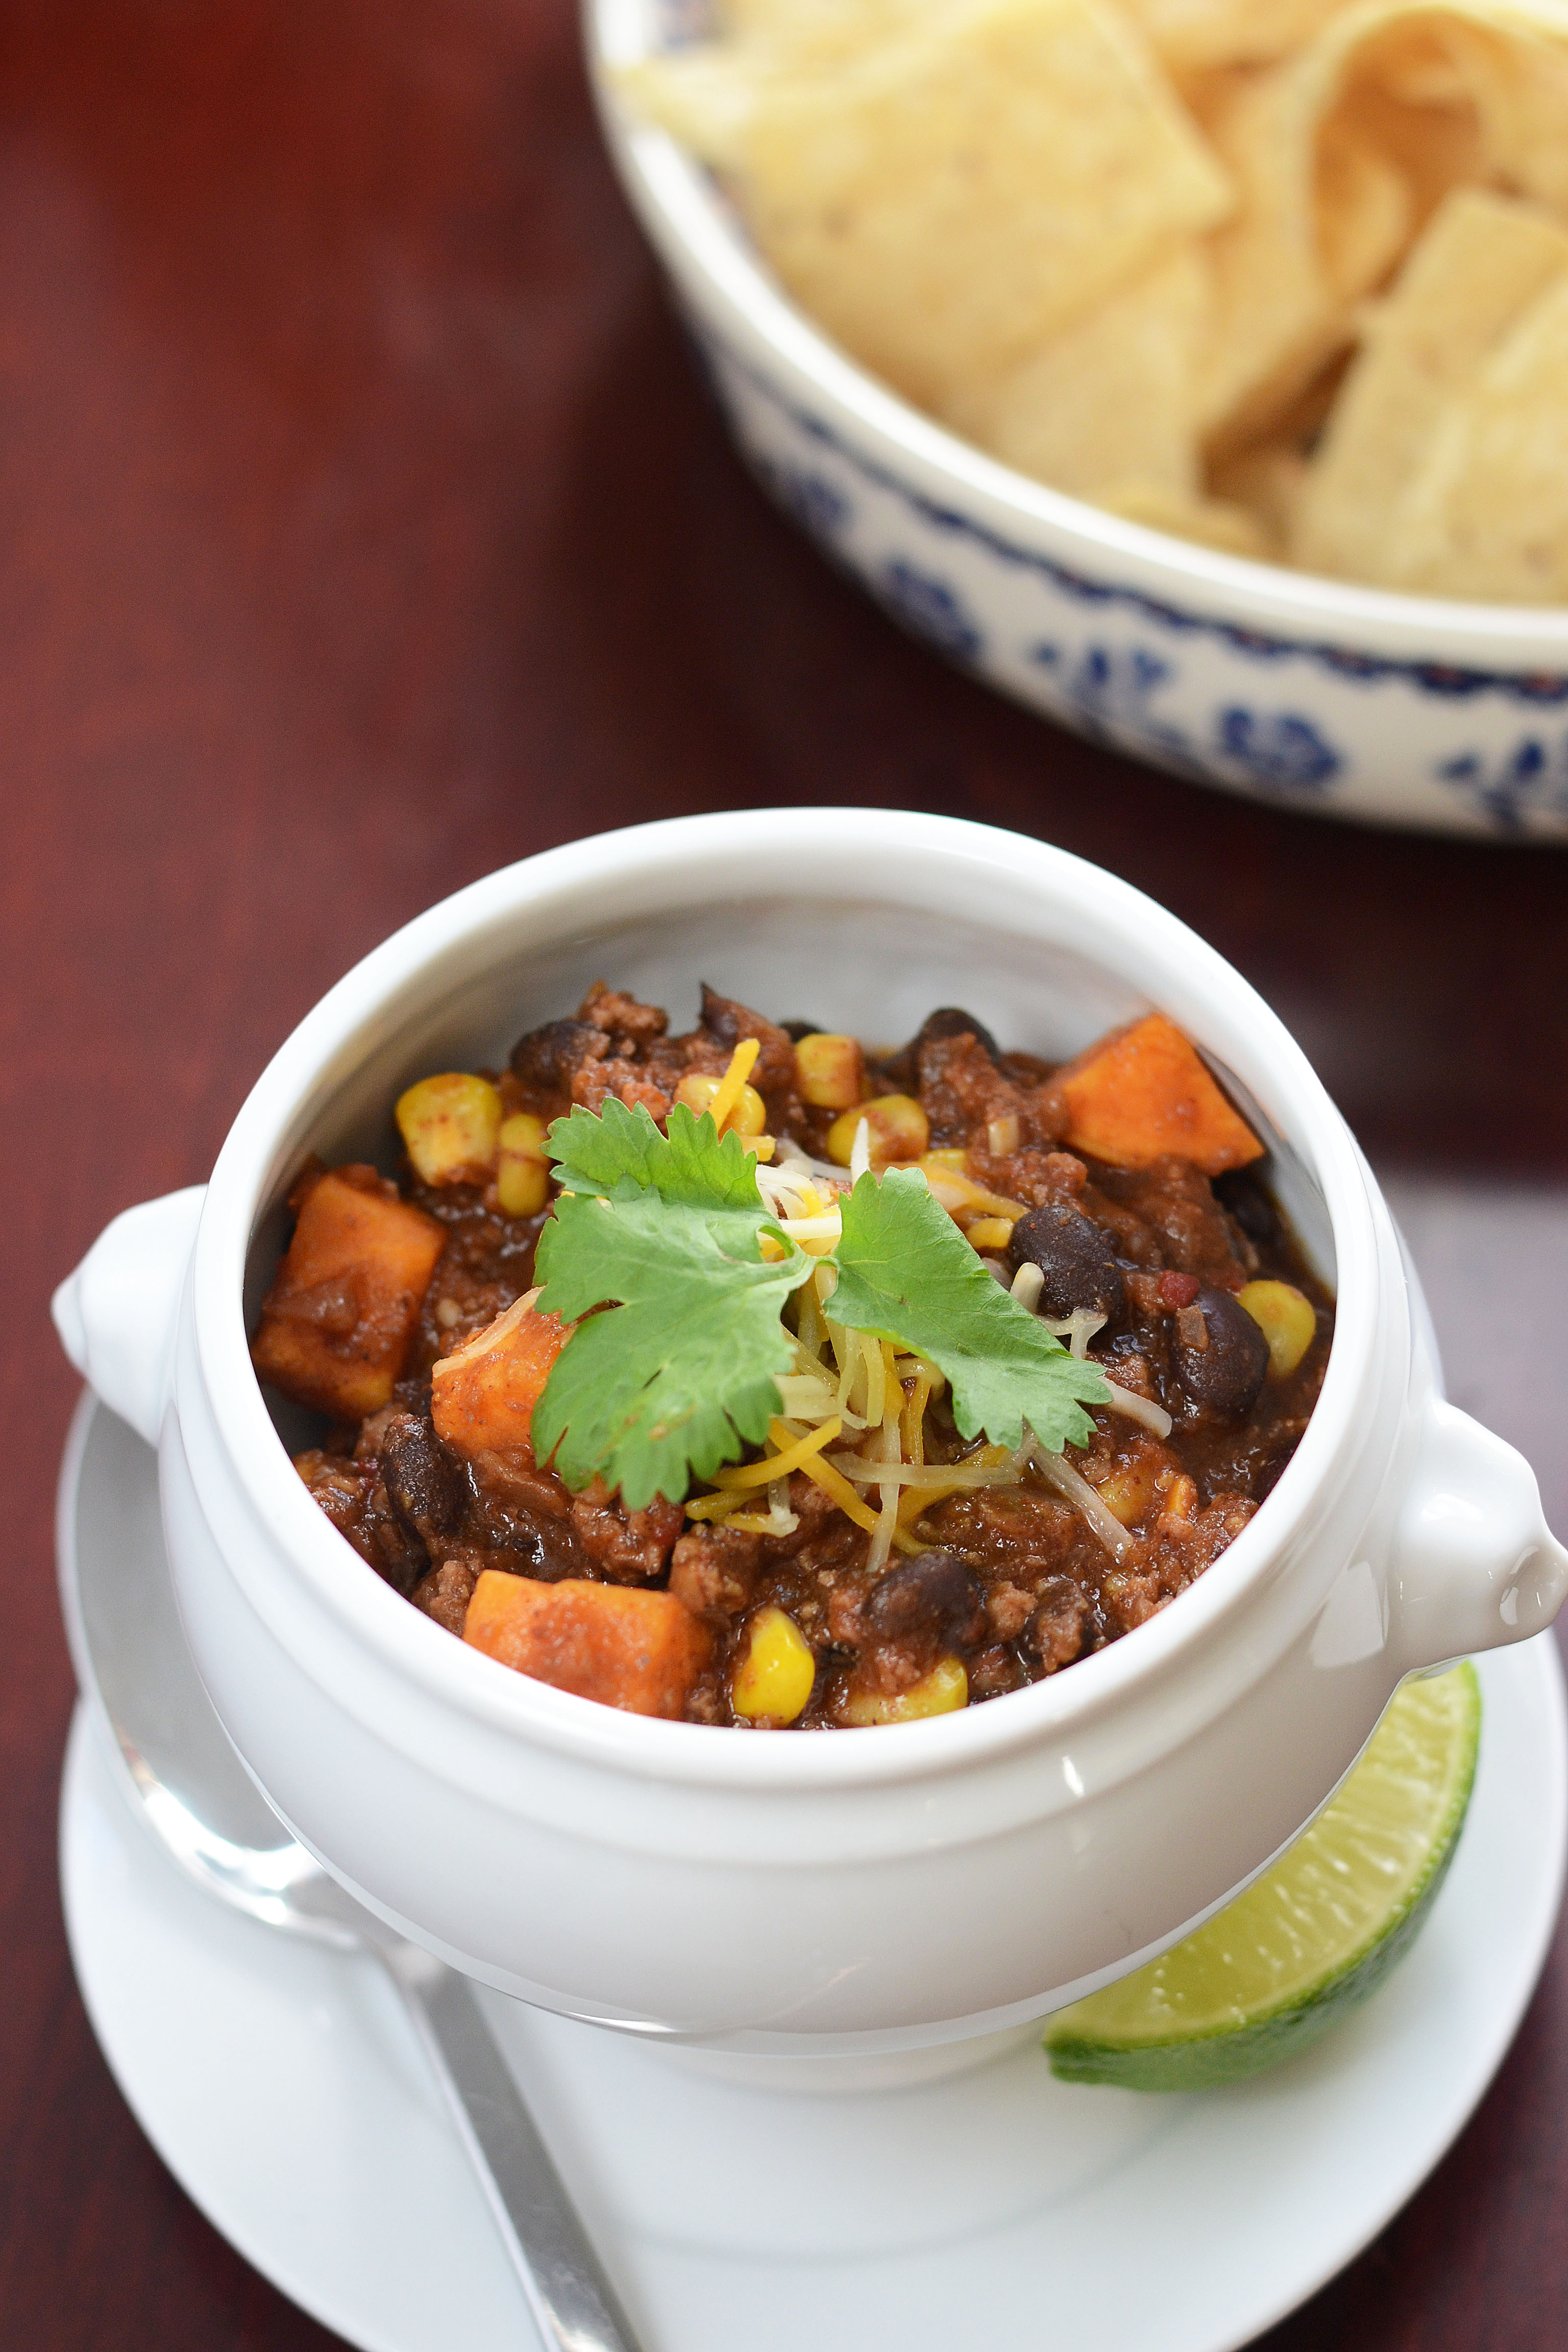 Turkey, Sweet Potato, and Black Bean Chili with Chipotle and